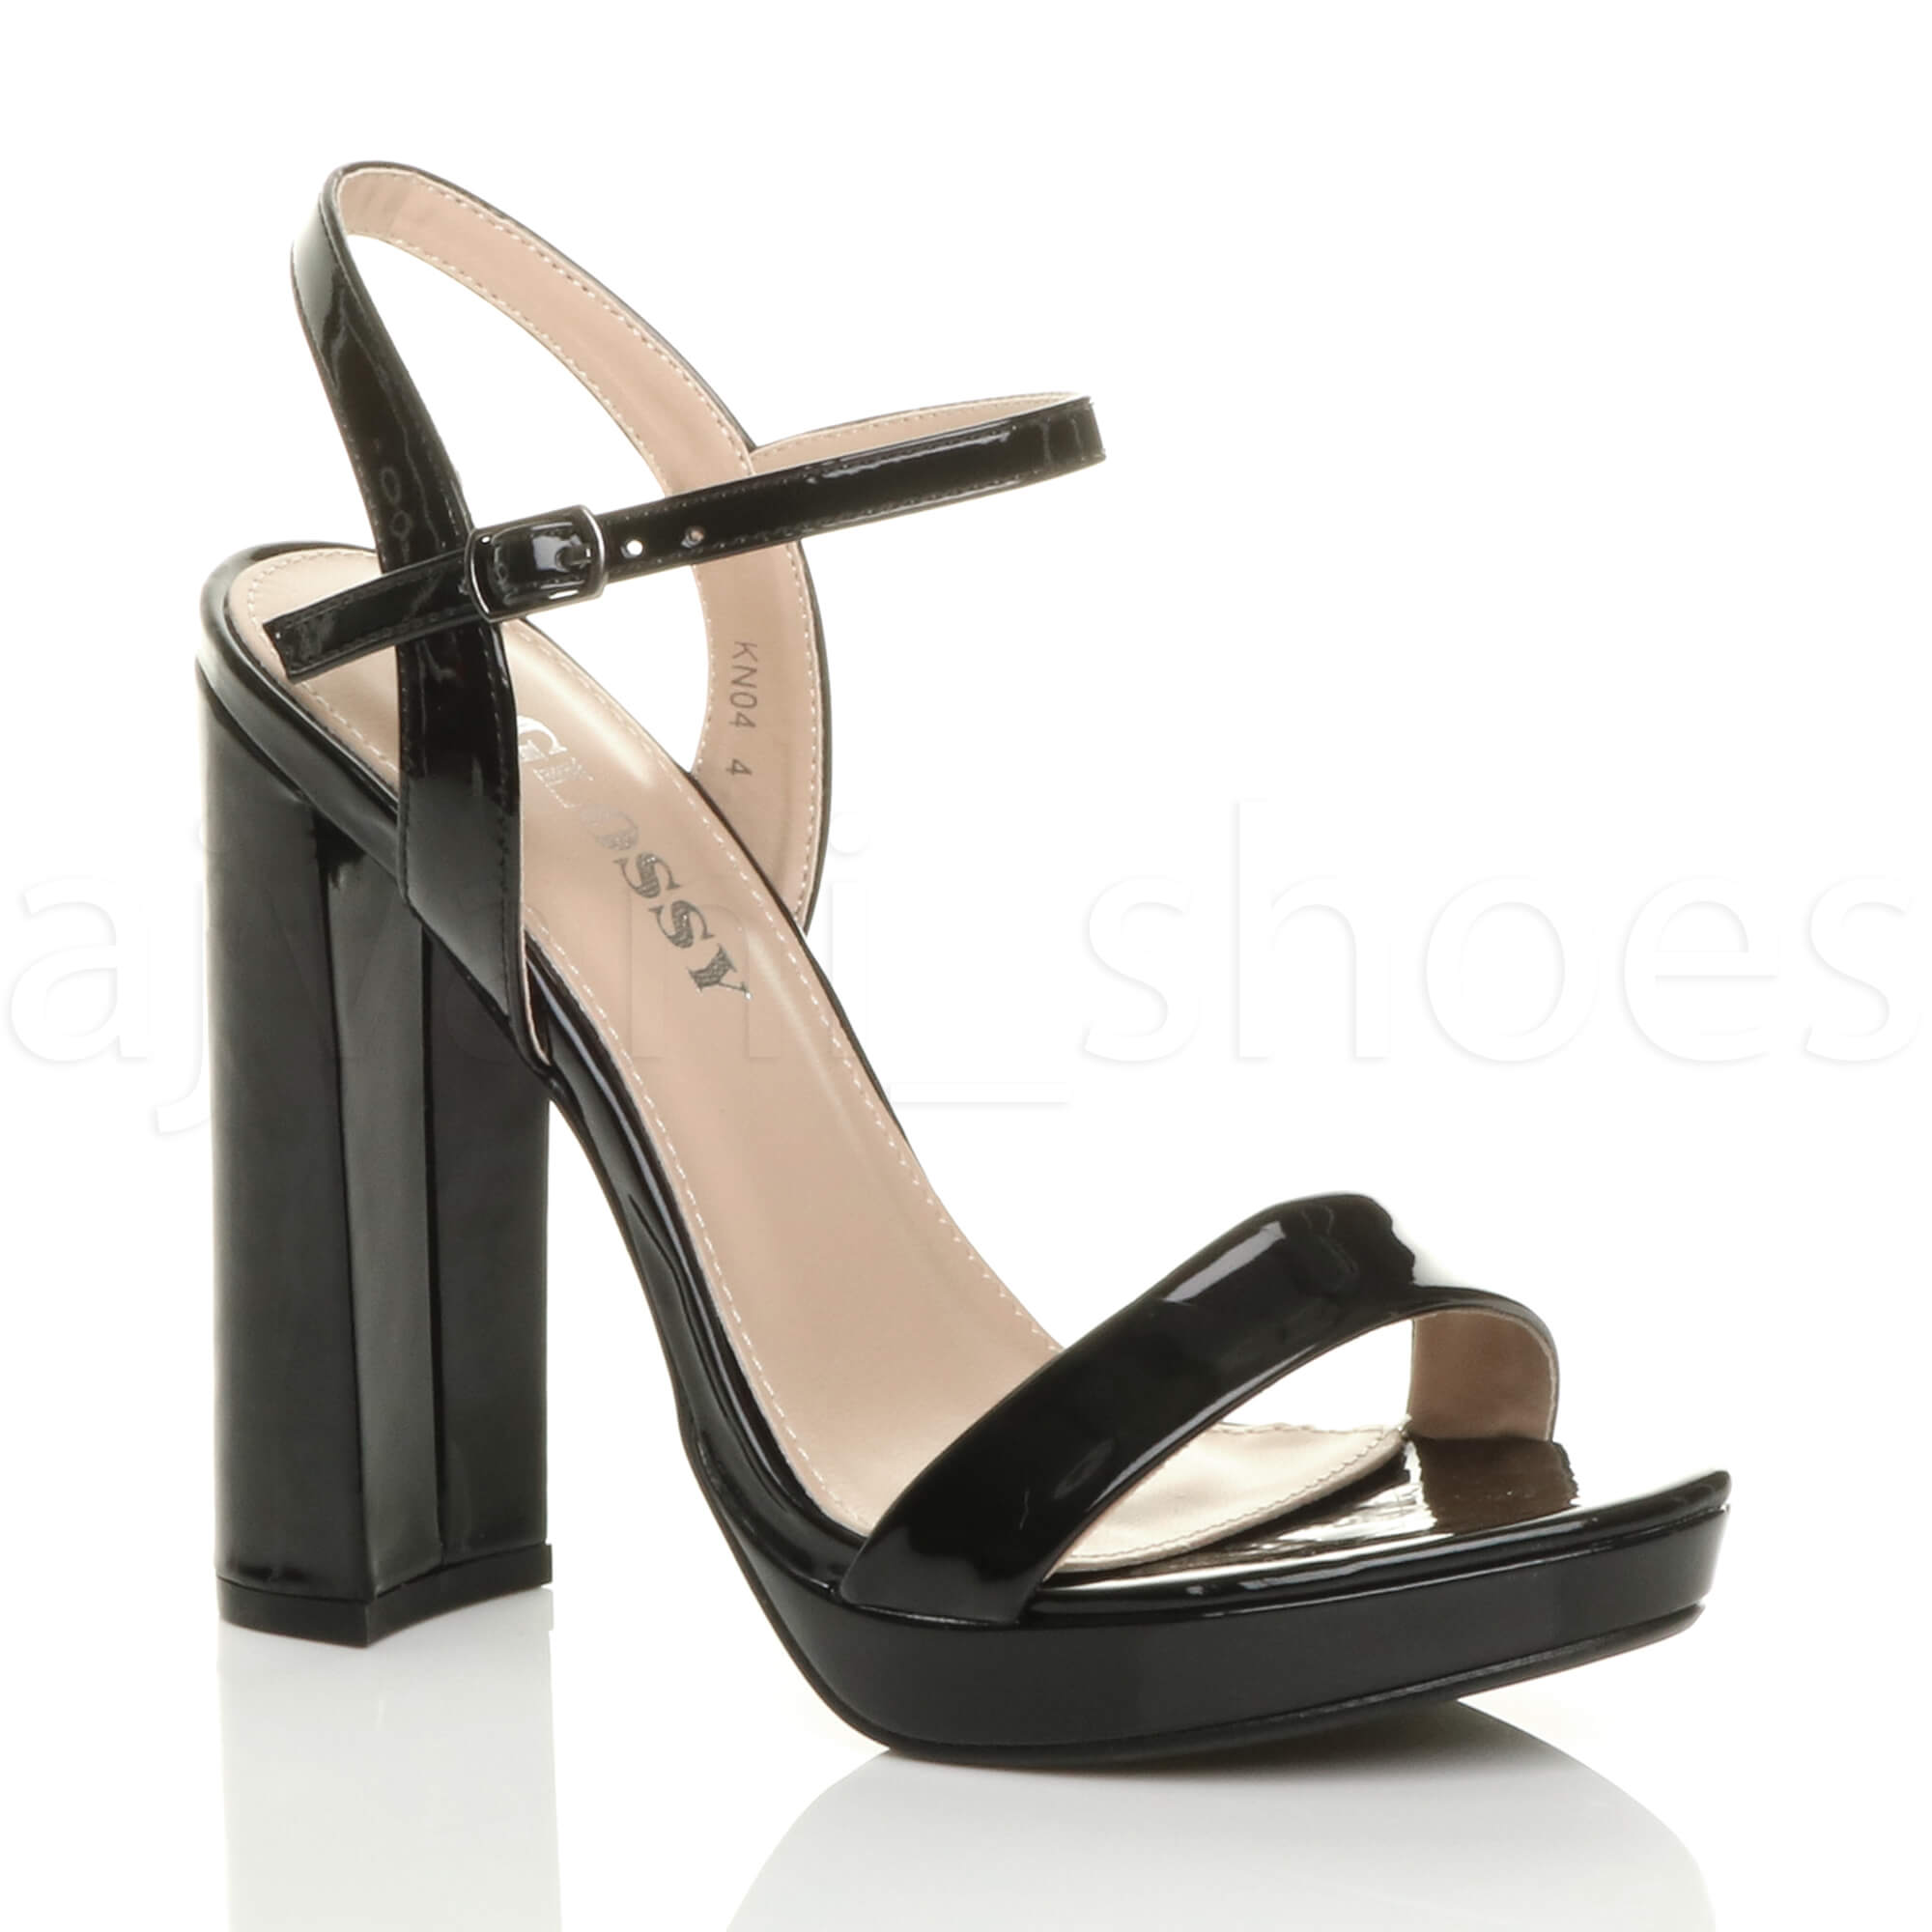 7b120bb6e5b1 Details about WOMENS LADIES HIGH BLOCK HEEL ANKLE STRAP PLATFORM BARELY  THERE SANDALS SIZE